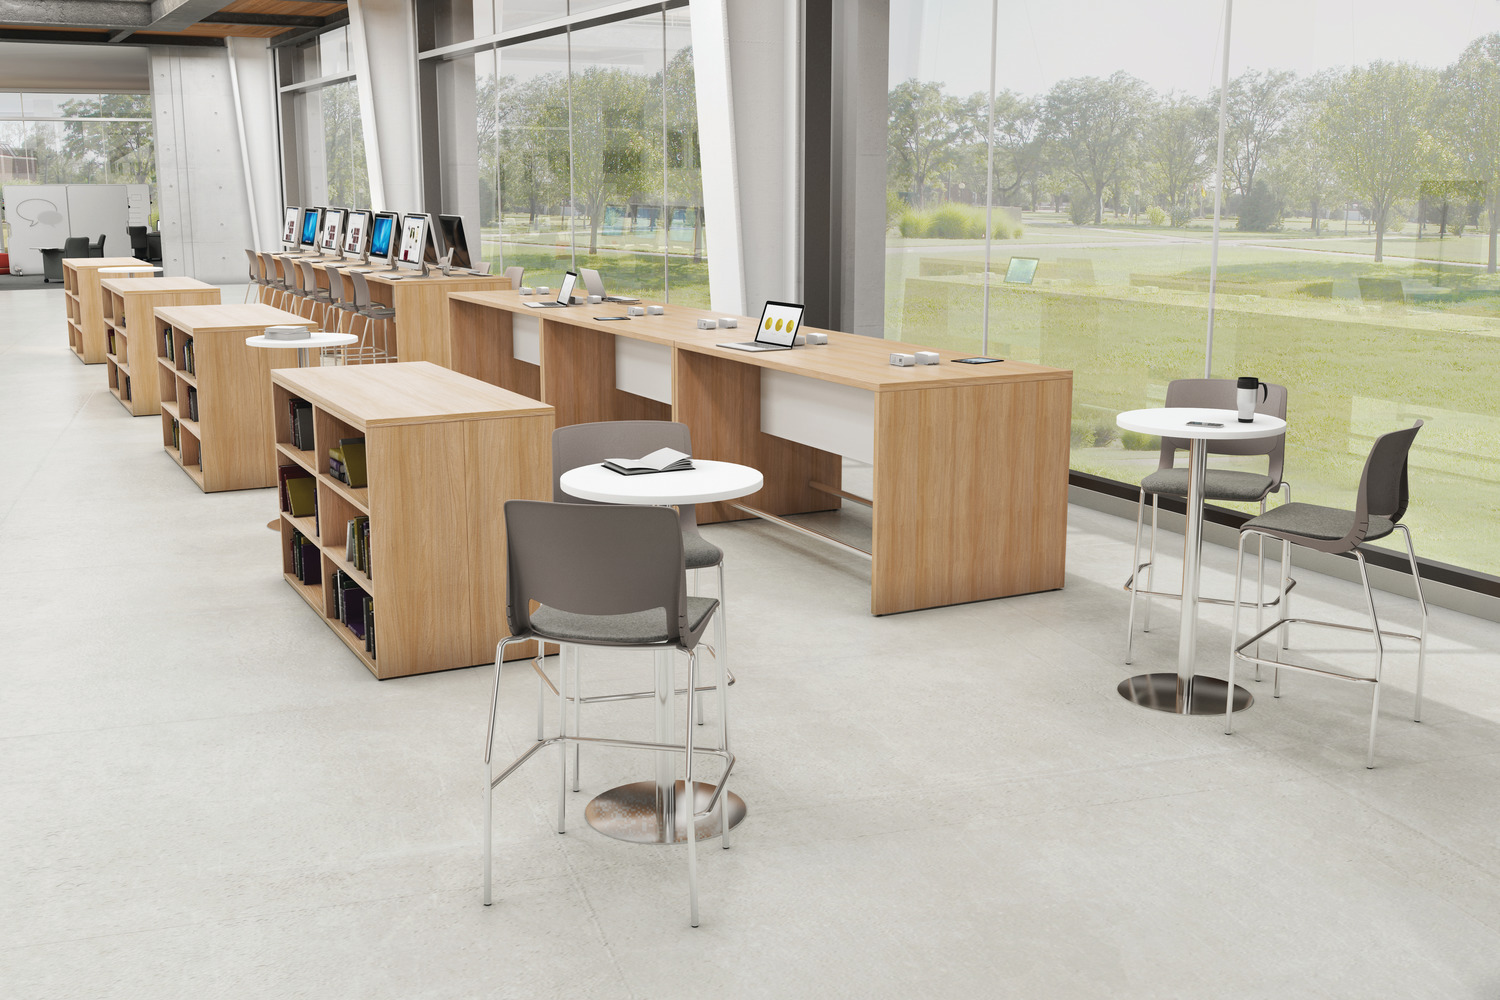 Education Library - Standing cafe table